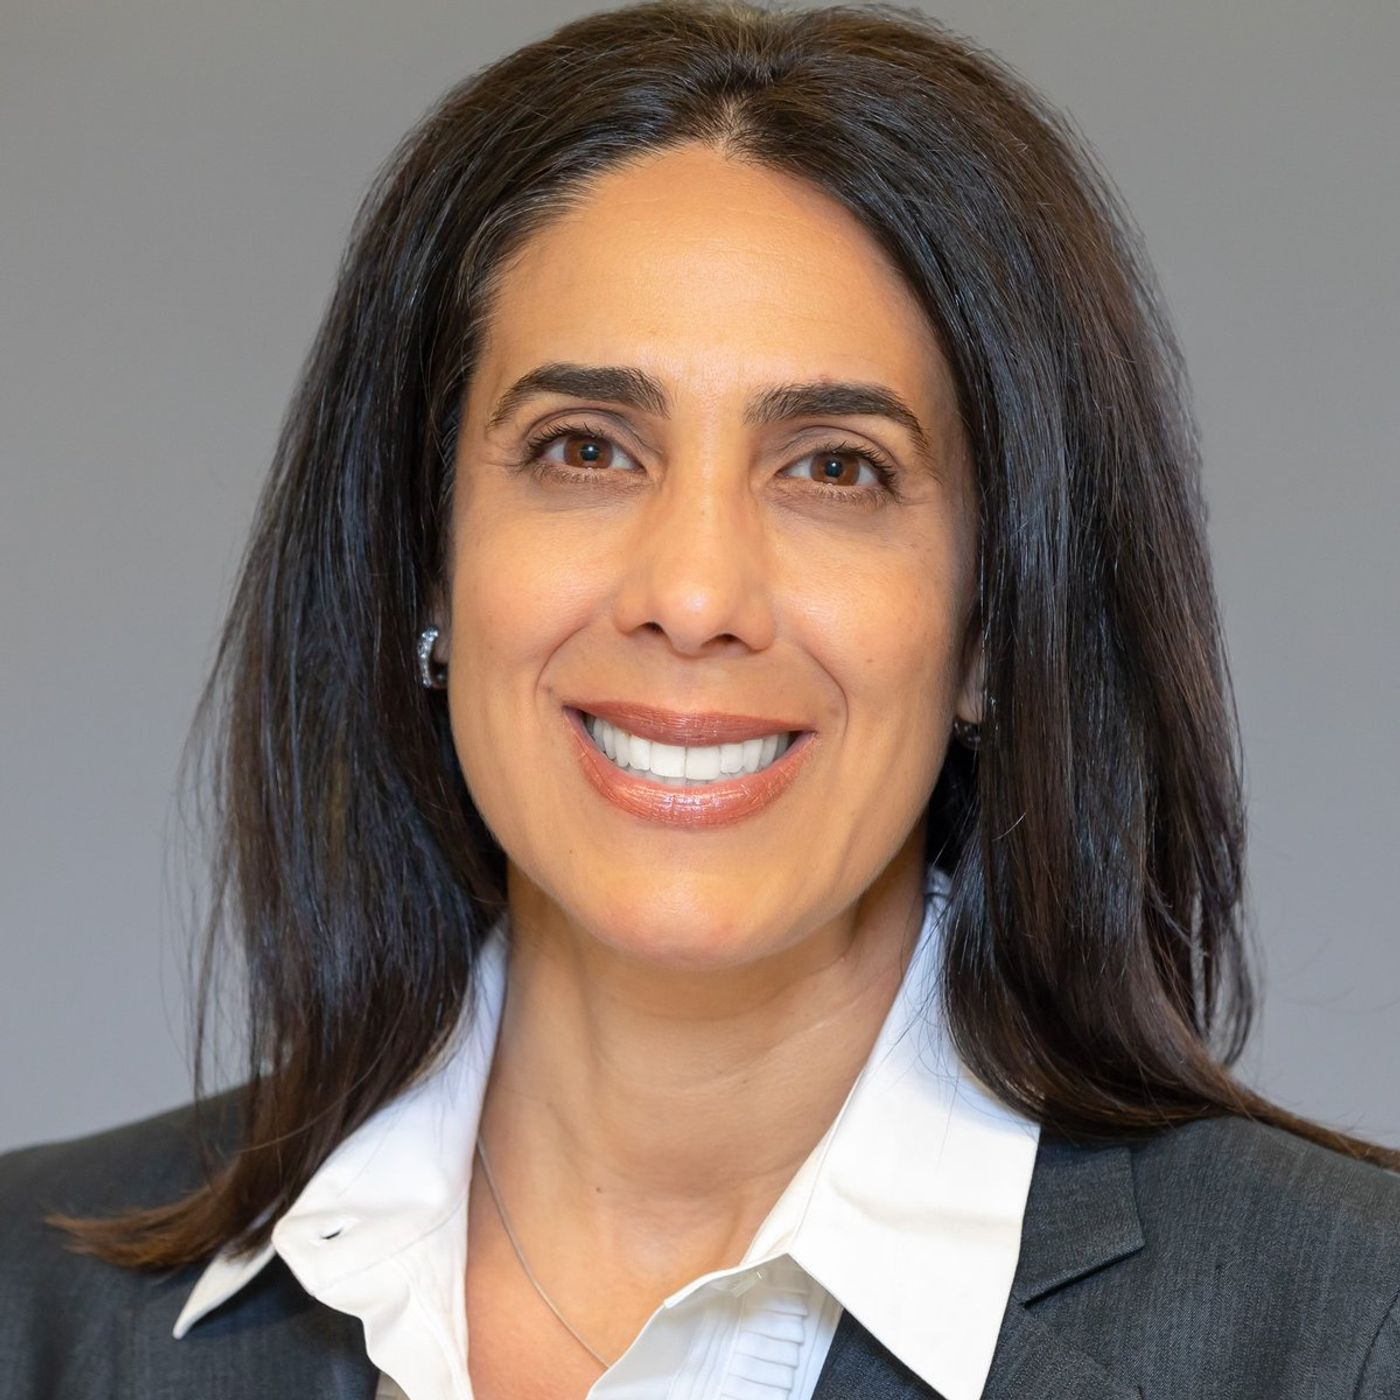 #20 - Making Corporate Values Human: A Conversation with Marsha Ershaghi Hames